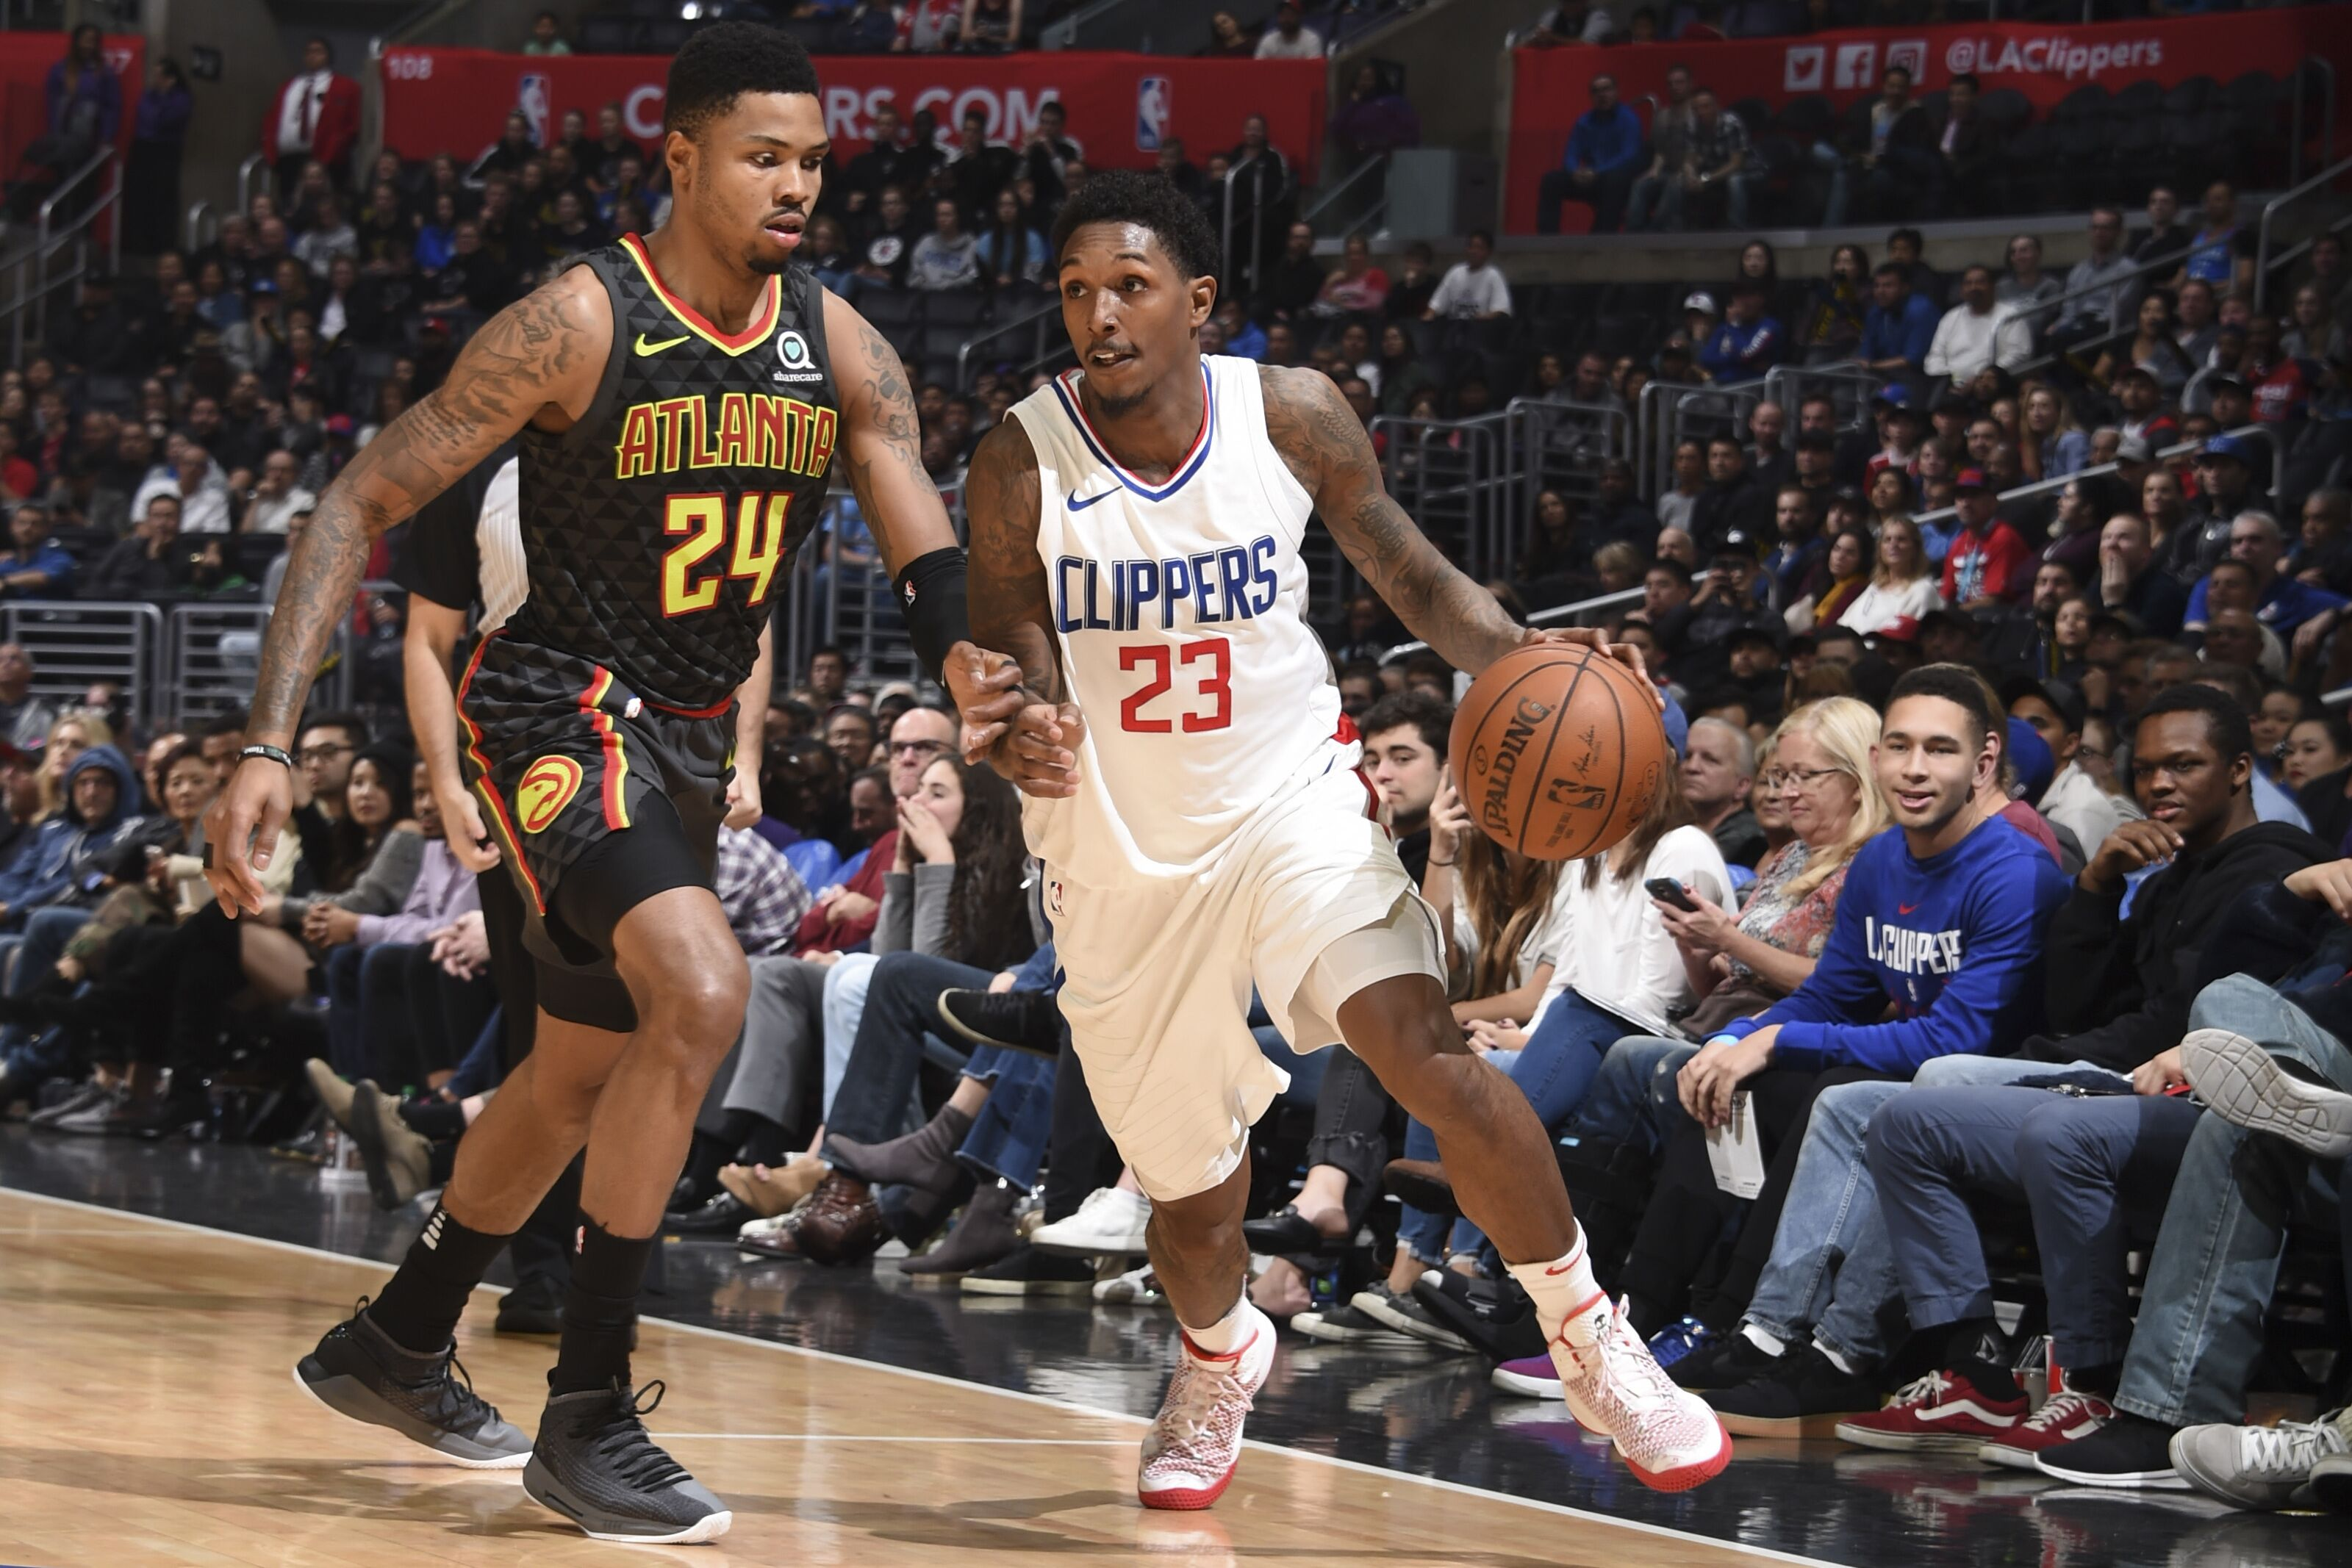 Los Angeles Clippers: Lou Williams breaking ankles